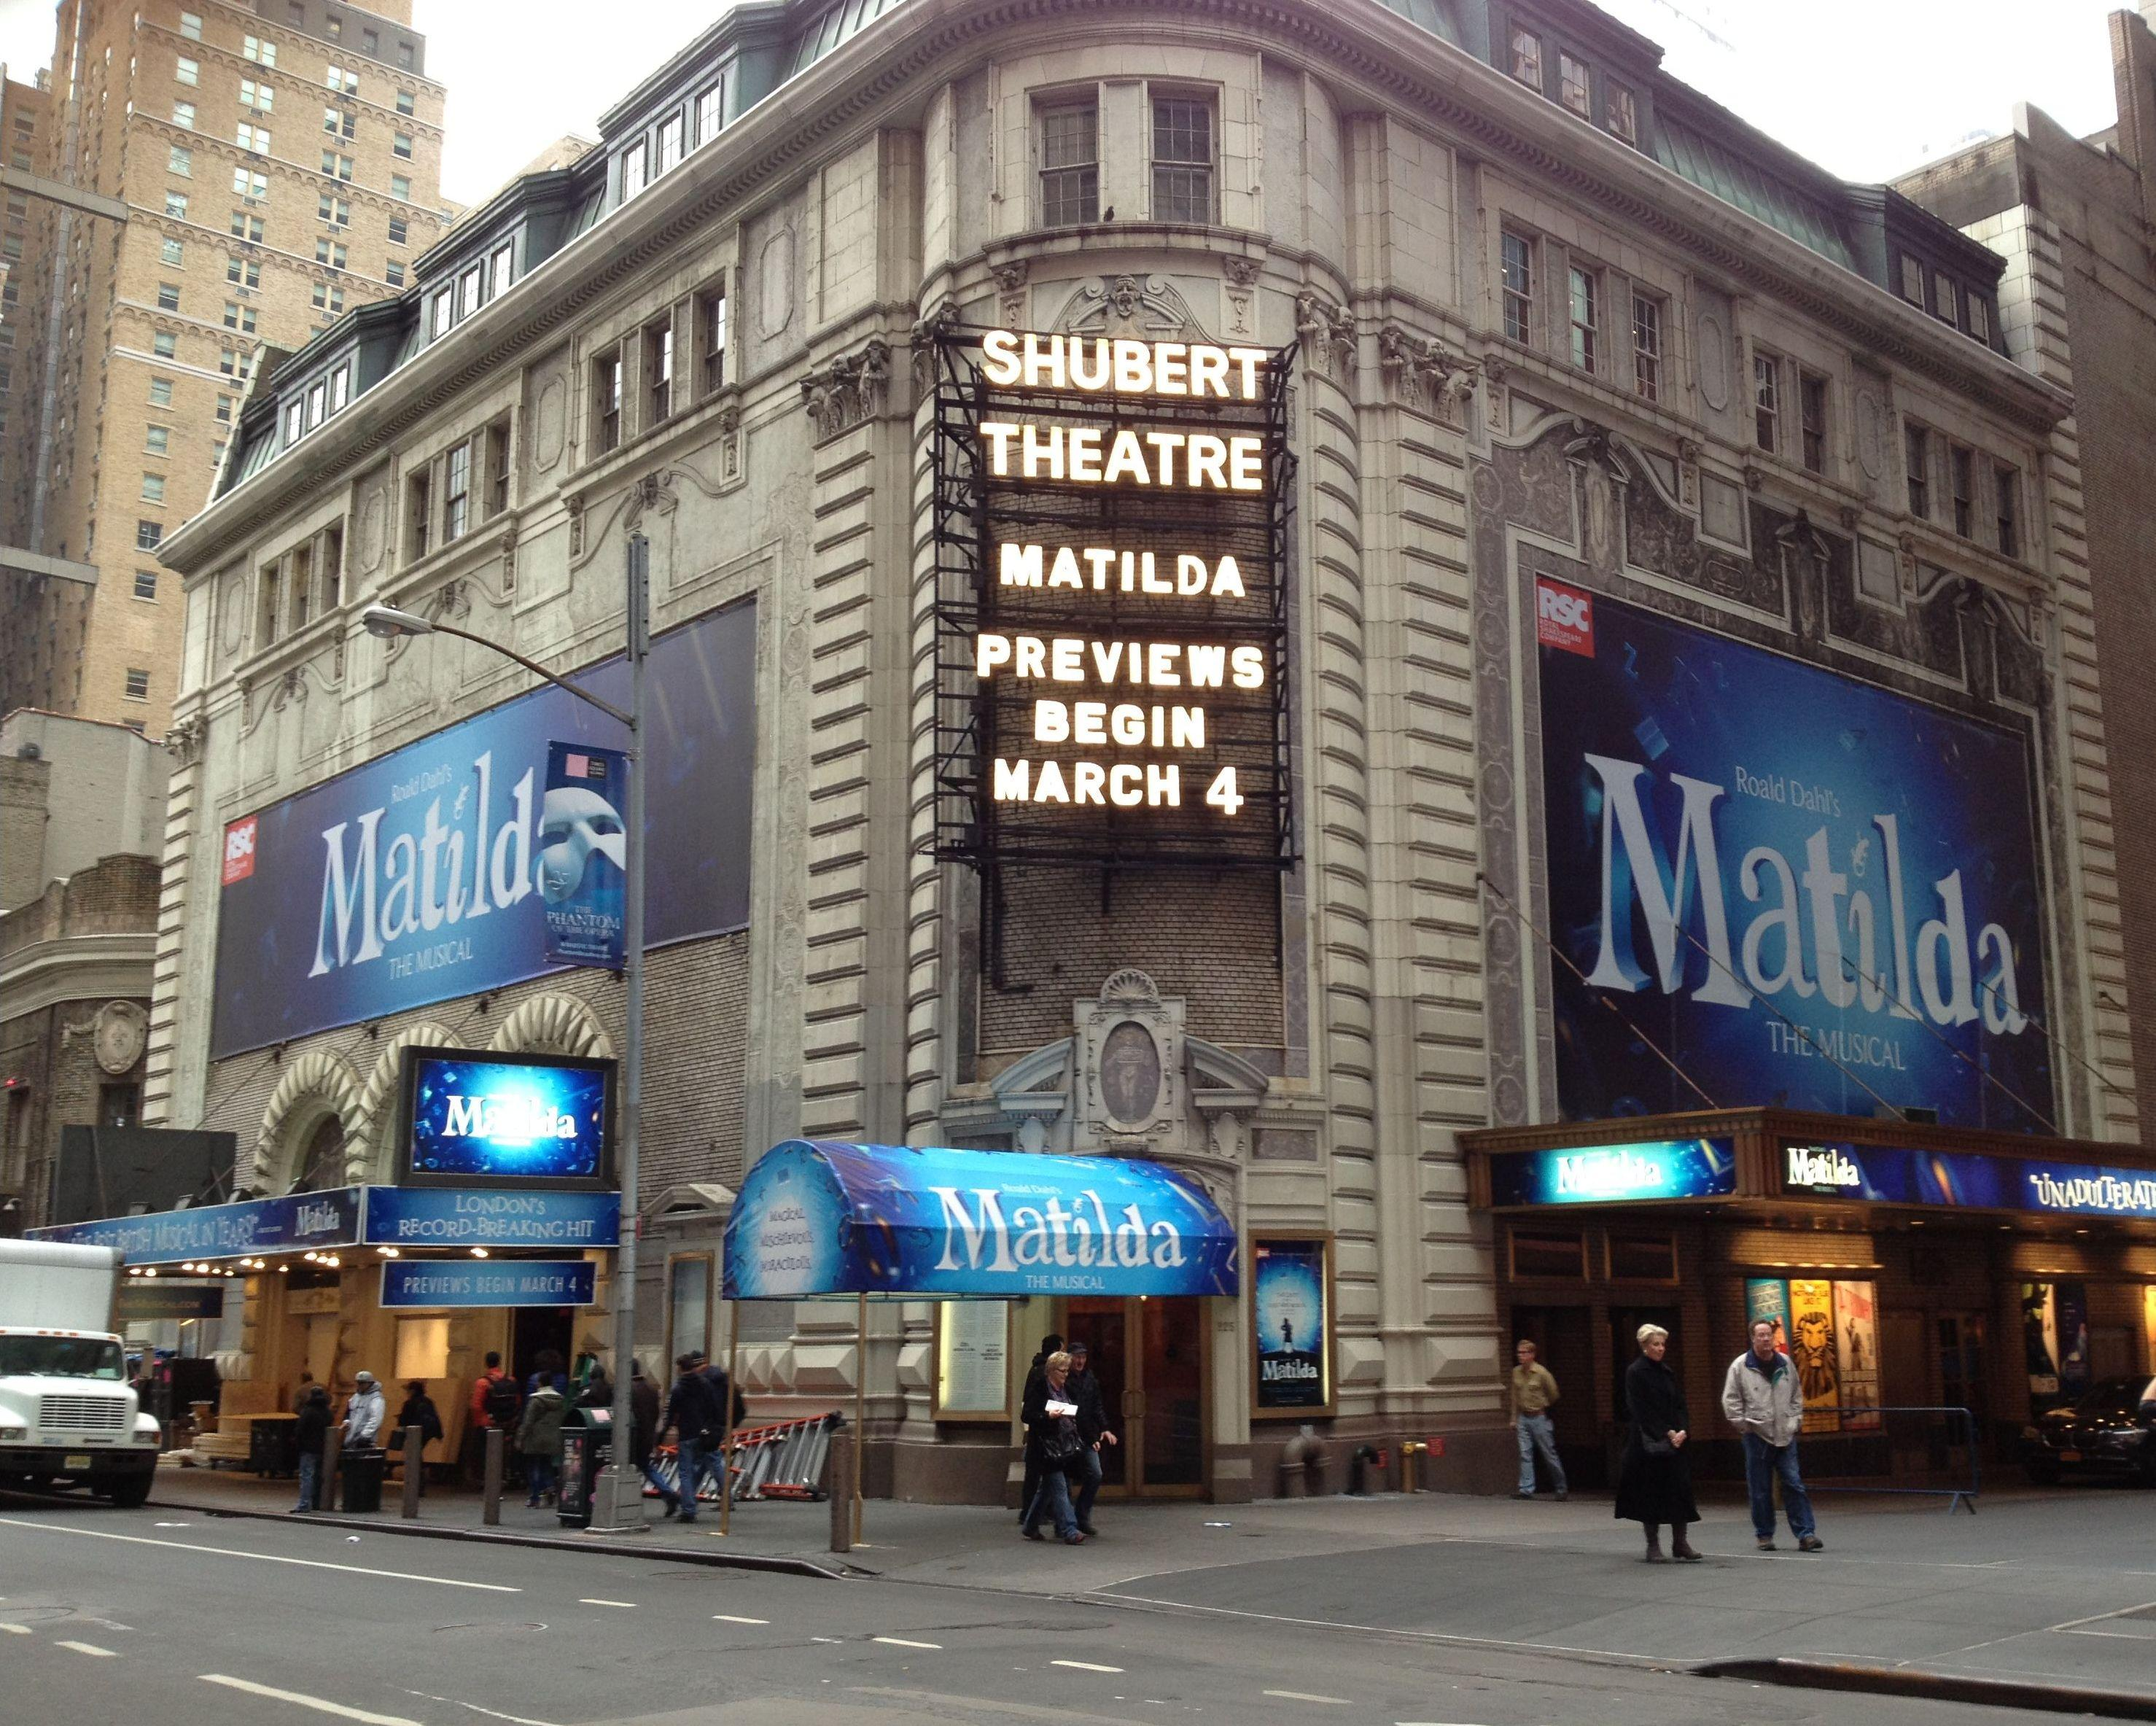 Broadway Previews Begin Tonight Matilda The Musical London